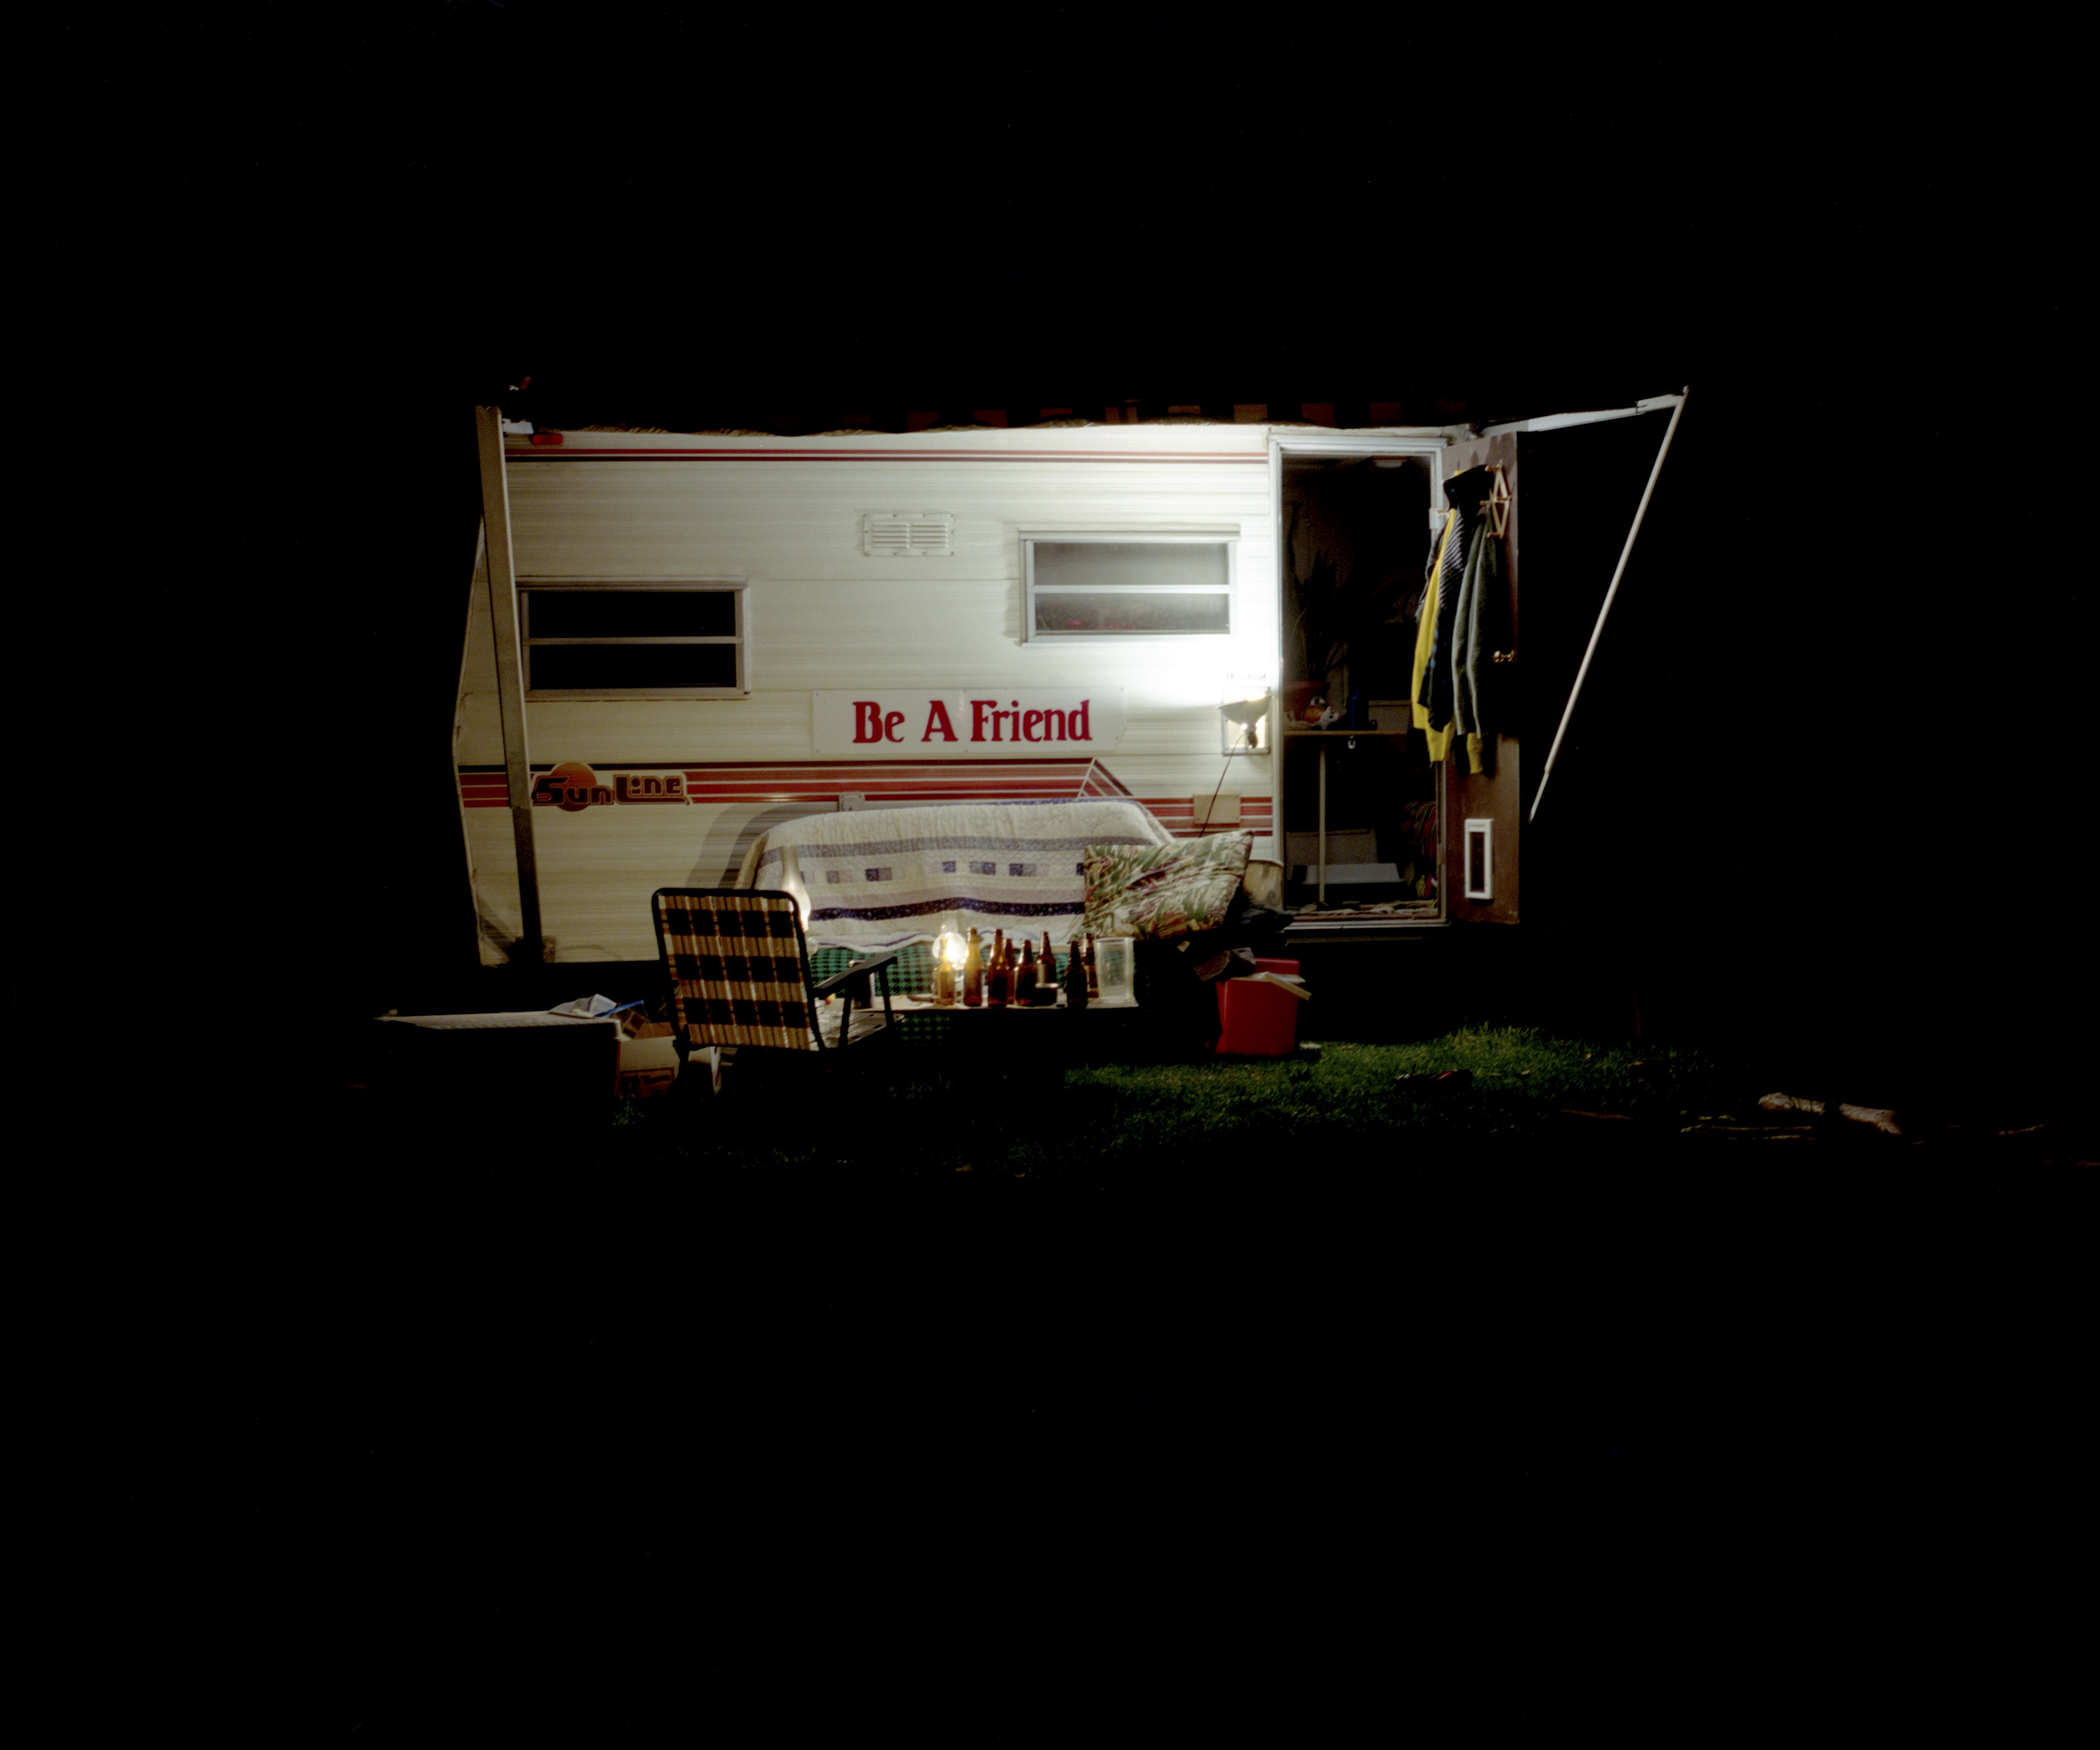 Emily's Trailer (Be a Friend)